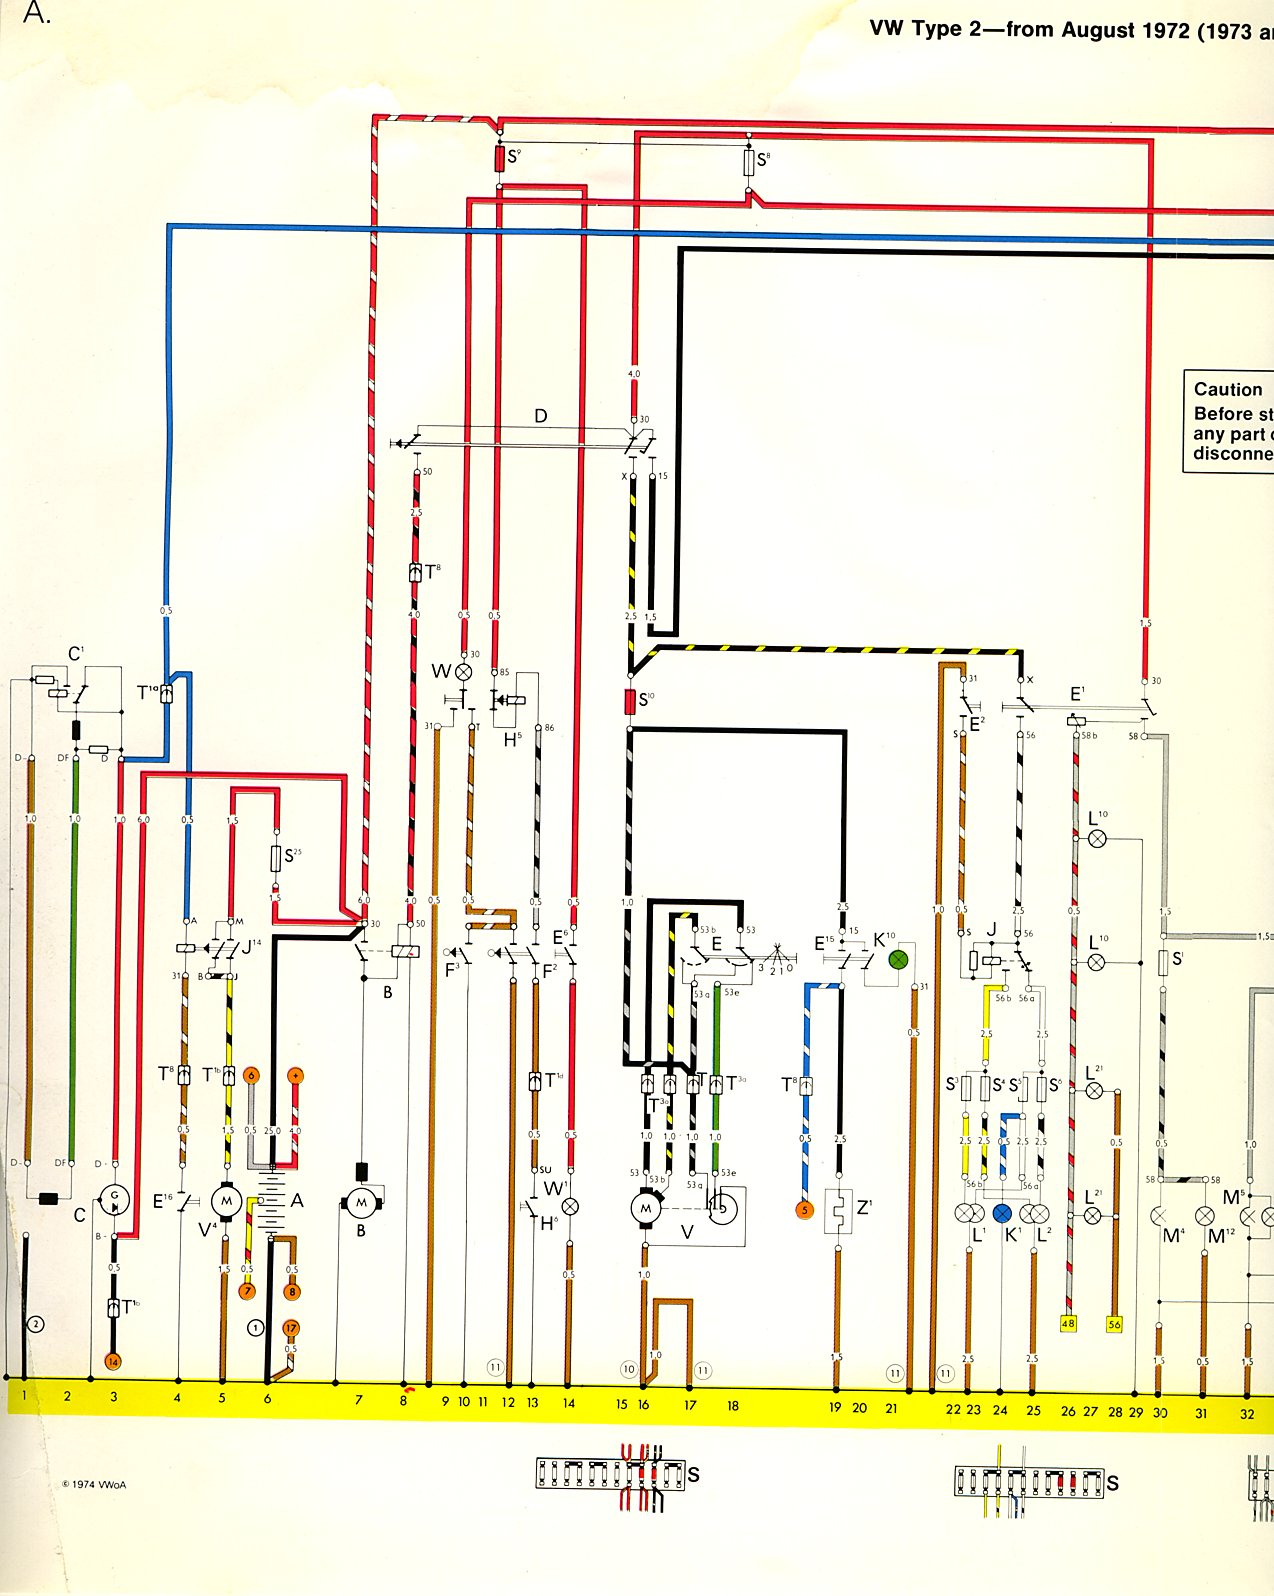 baybus_7374a 1973 74 bus wiring diagram thegoldenbug com bus wiring diagrams at eliteediting.co